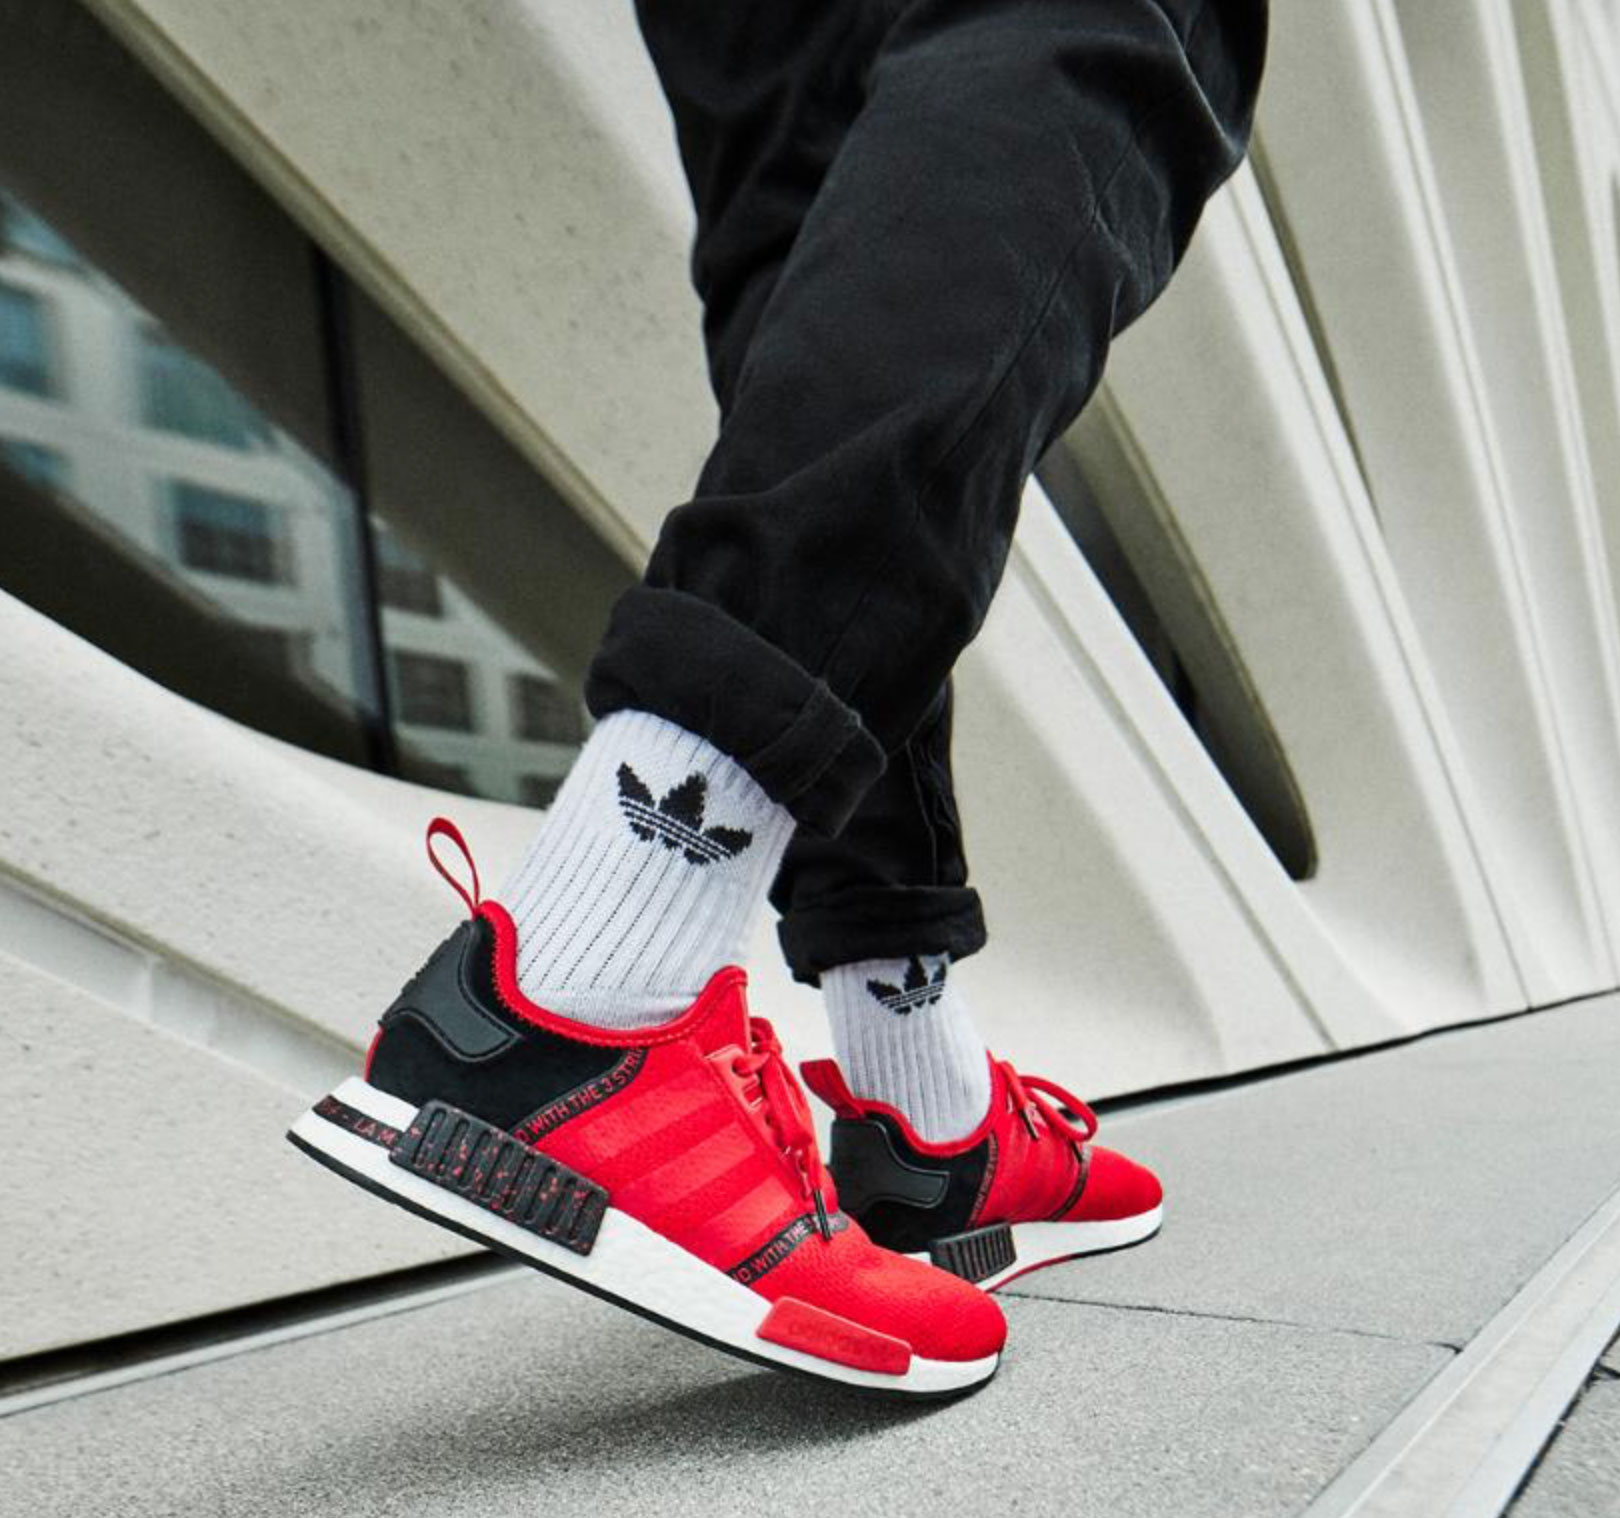 adidas-nmd-taped-boost-printed-series-red-shoes